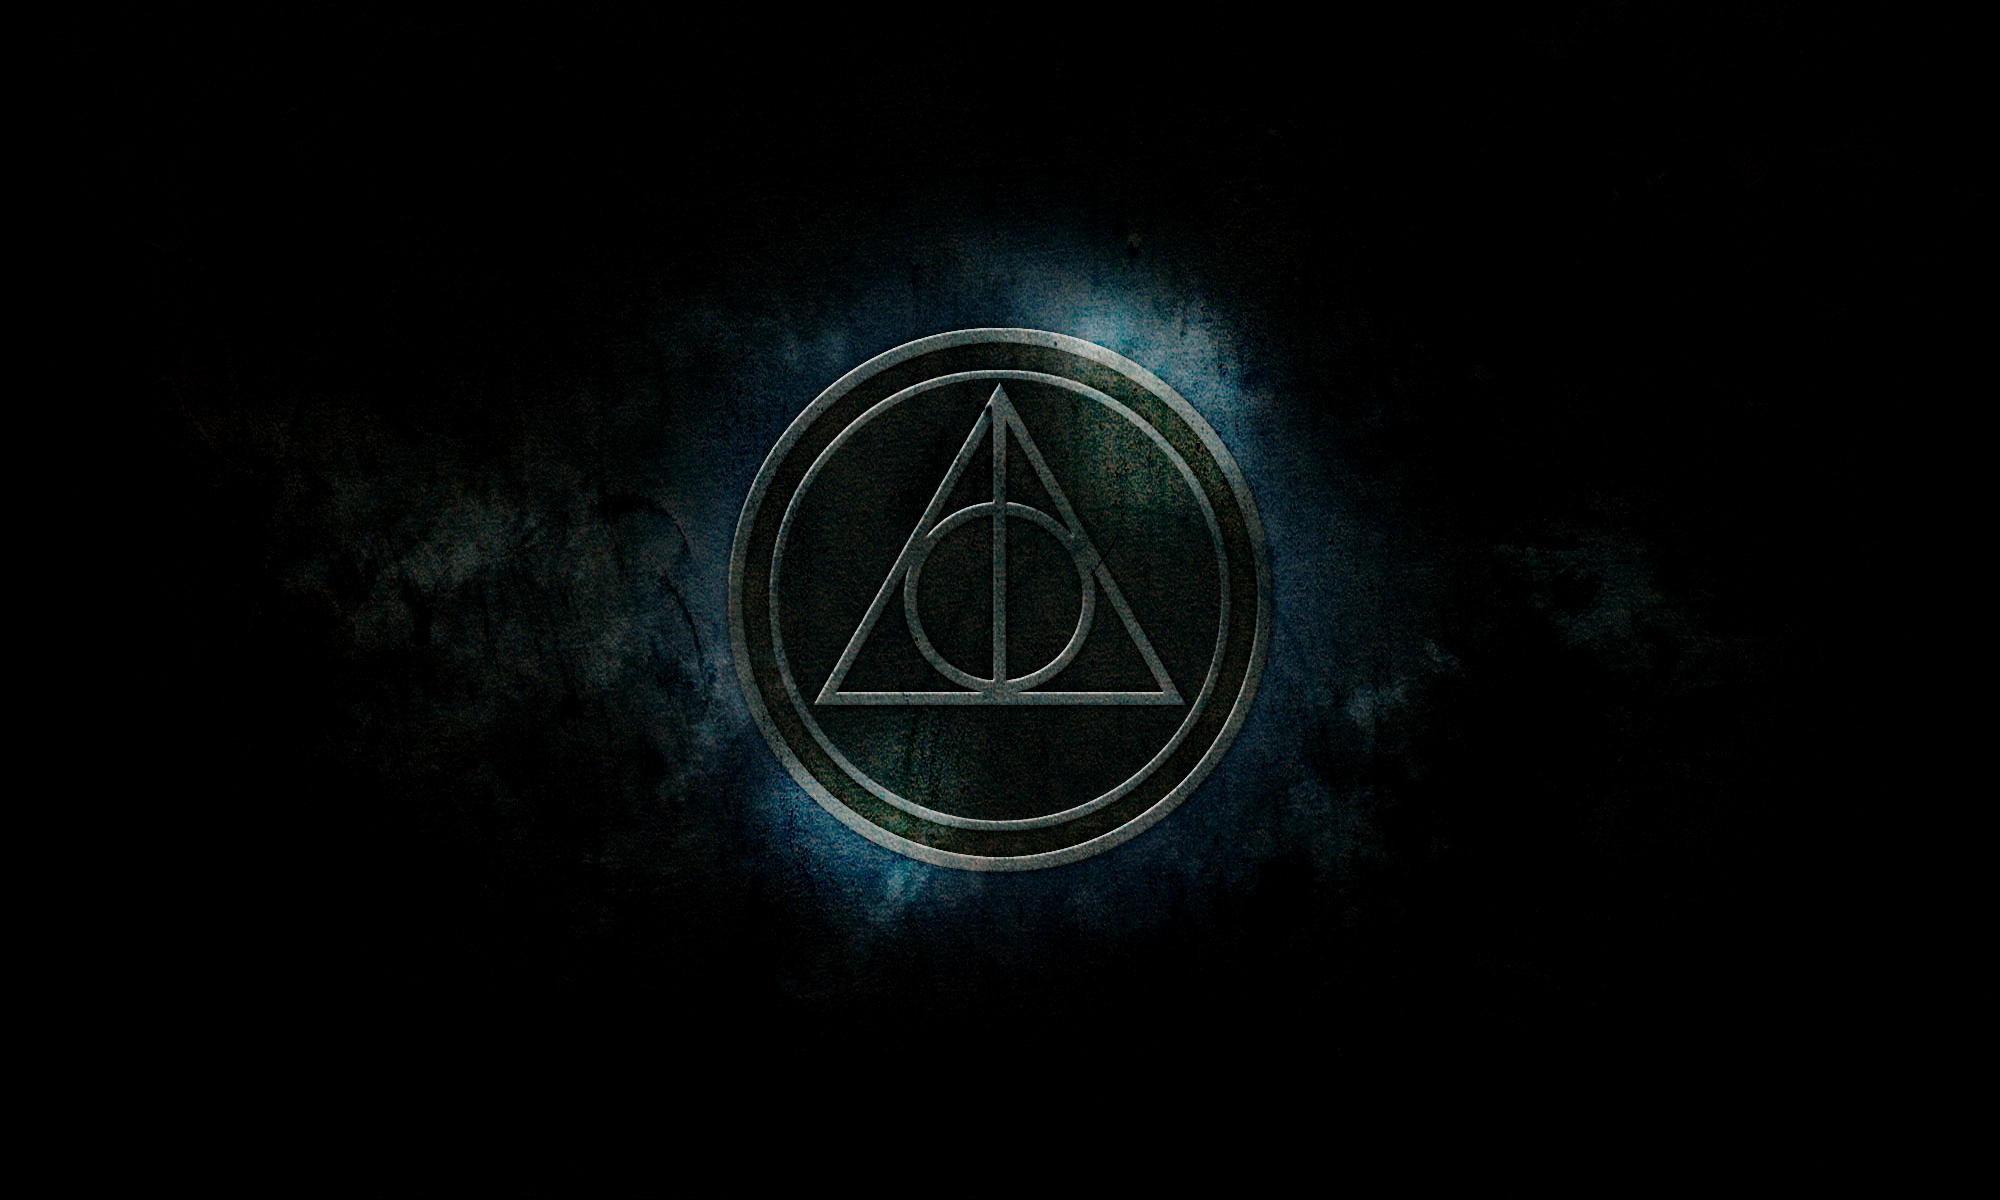 Harry Potter Deathly Hallows Wallpaper By Mrstonesley D4hsdd9 Png Deathly Hallows Wallpaper Harry Potter Wallpaper Backgrounds Desktop Wallpaper Harry Potter